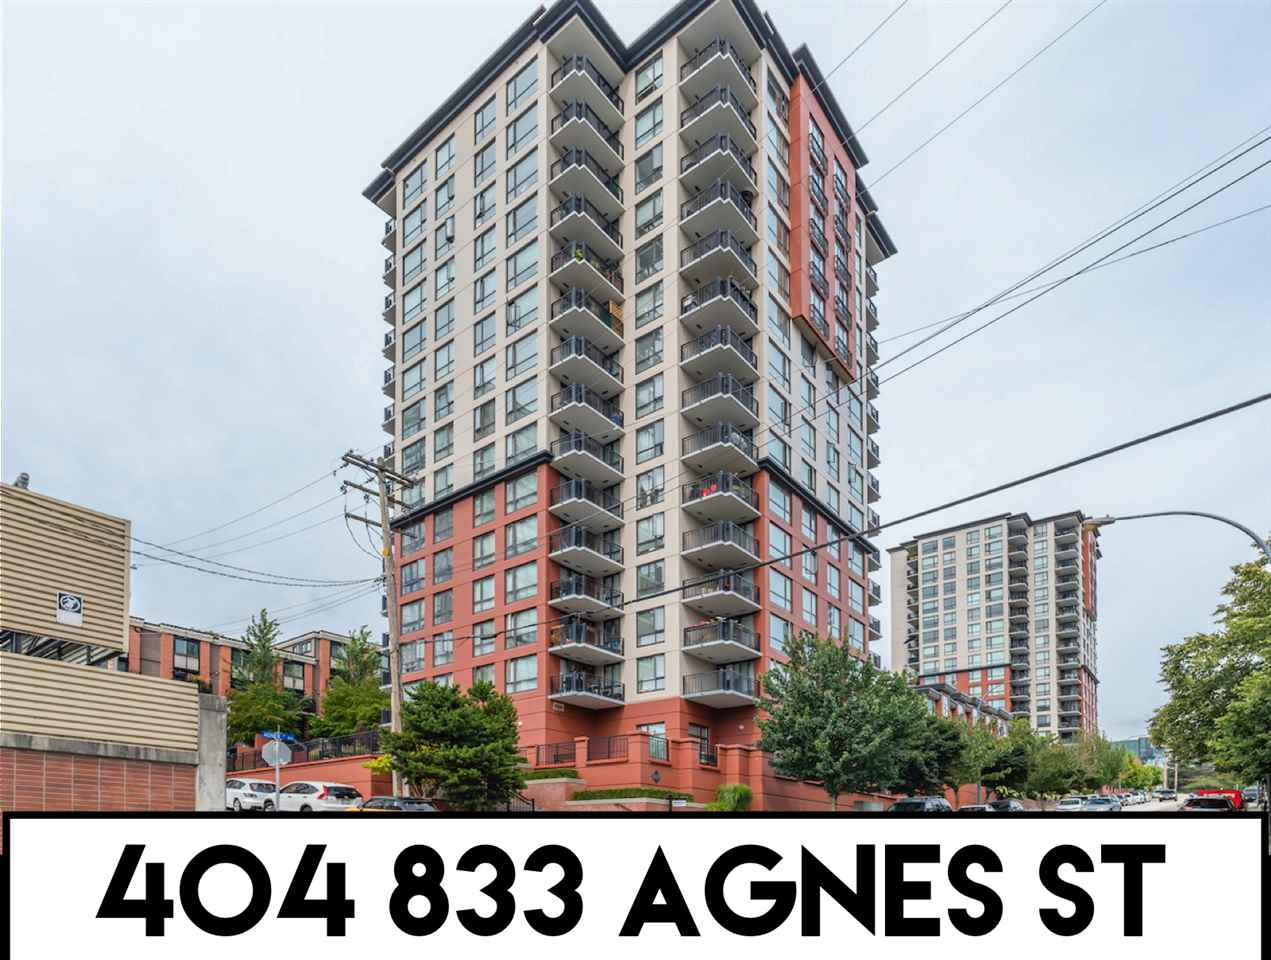 404 833 AGNES STREET - Downtown NW Apartment/Condo for sale, 2 Bedrooms (R2487078) - #1